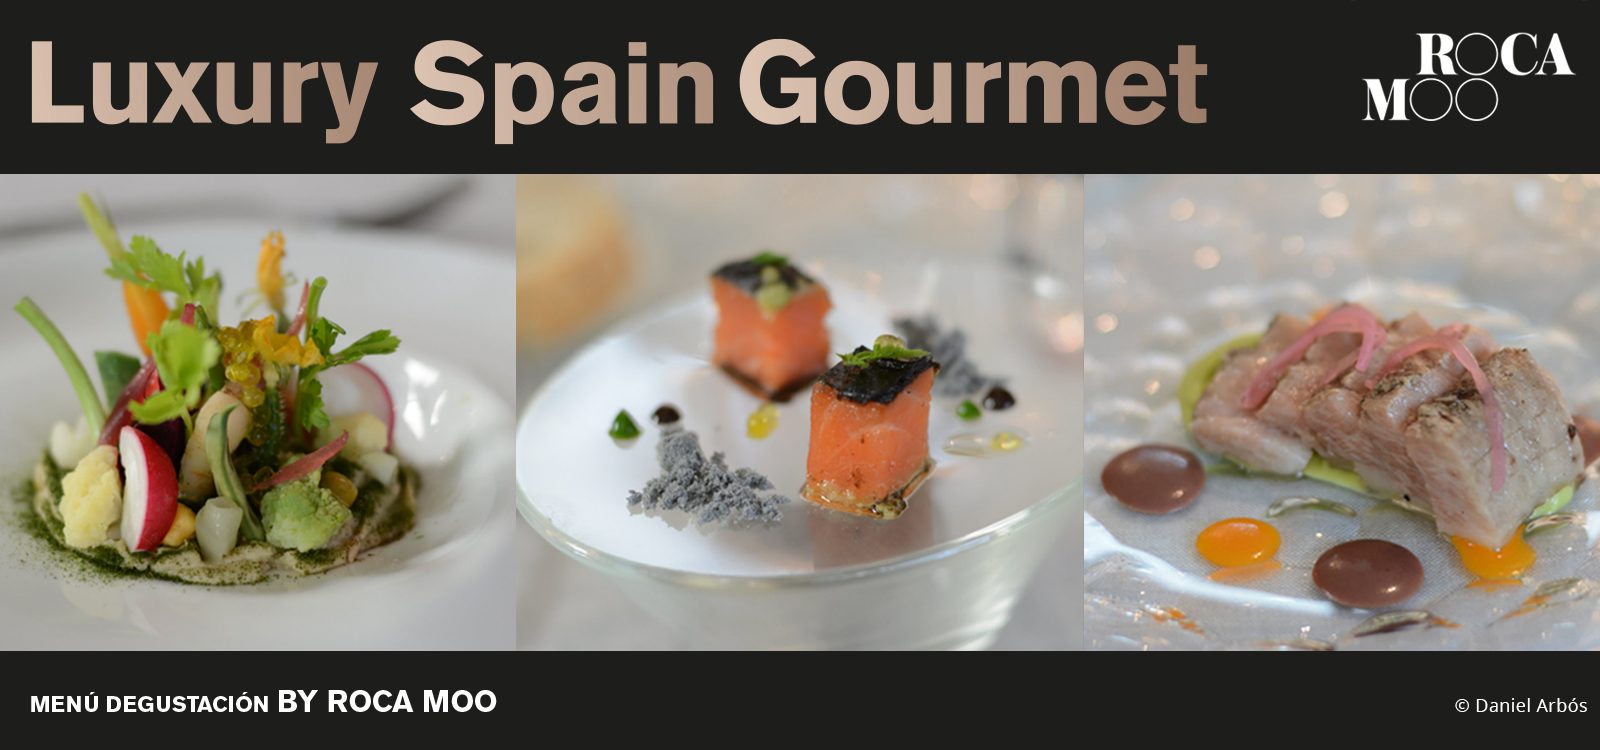 Luxury Spain Gourmet – Menú Degustación by Roca Moo